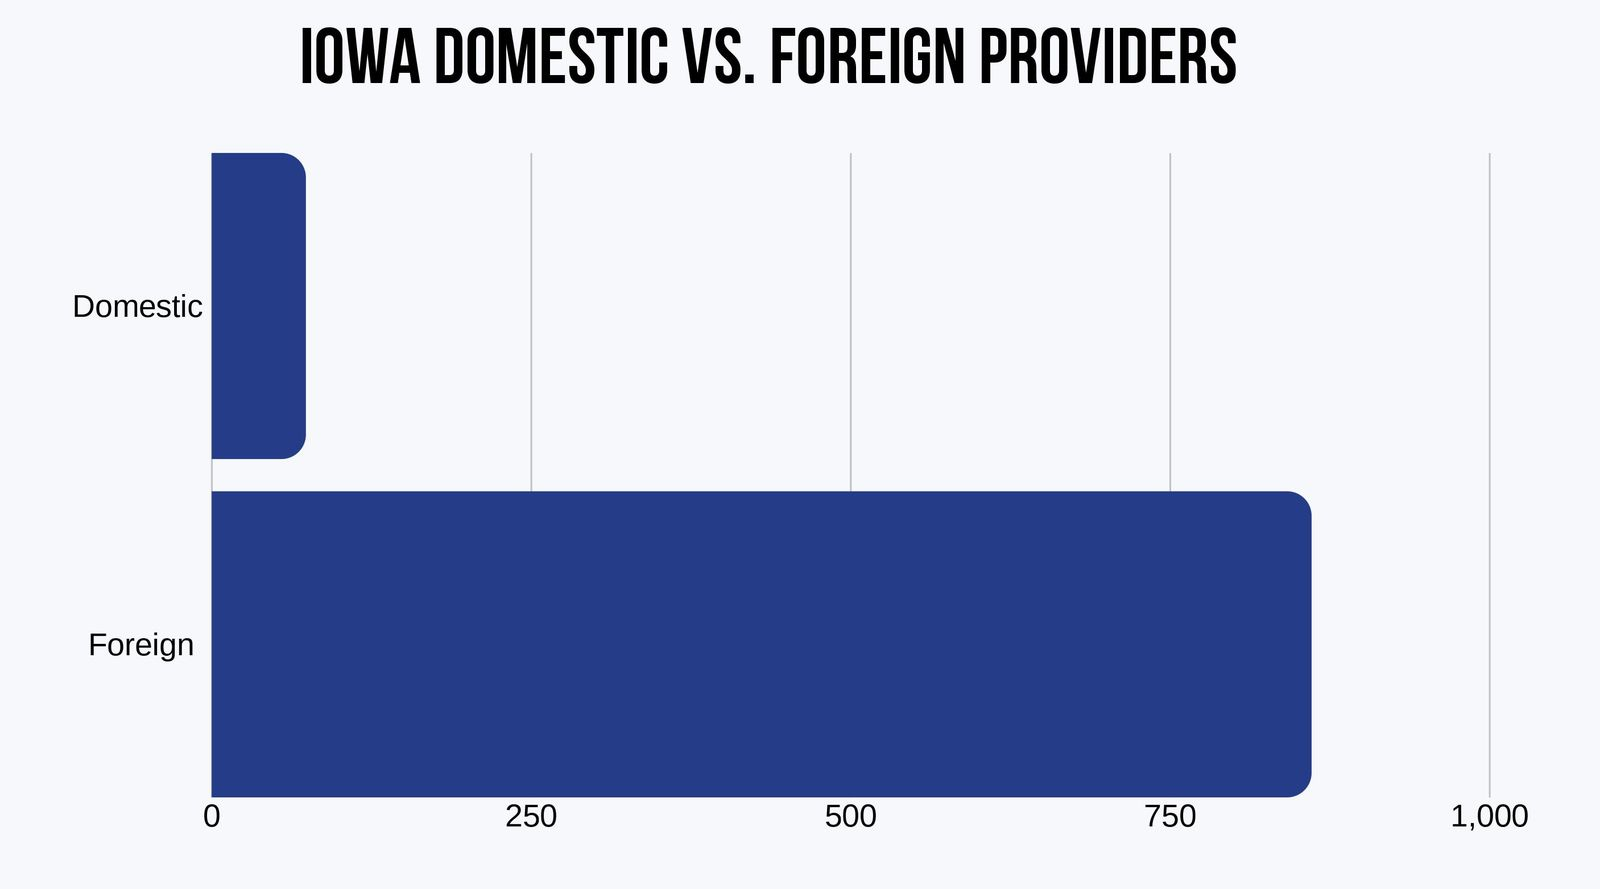 Iowa Domestic vs. Foreign Insurers